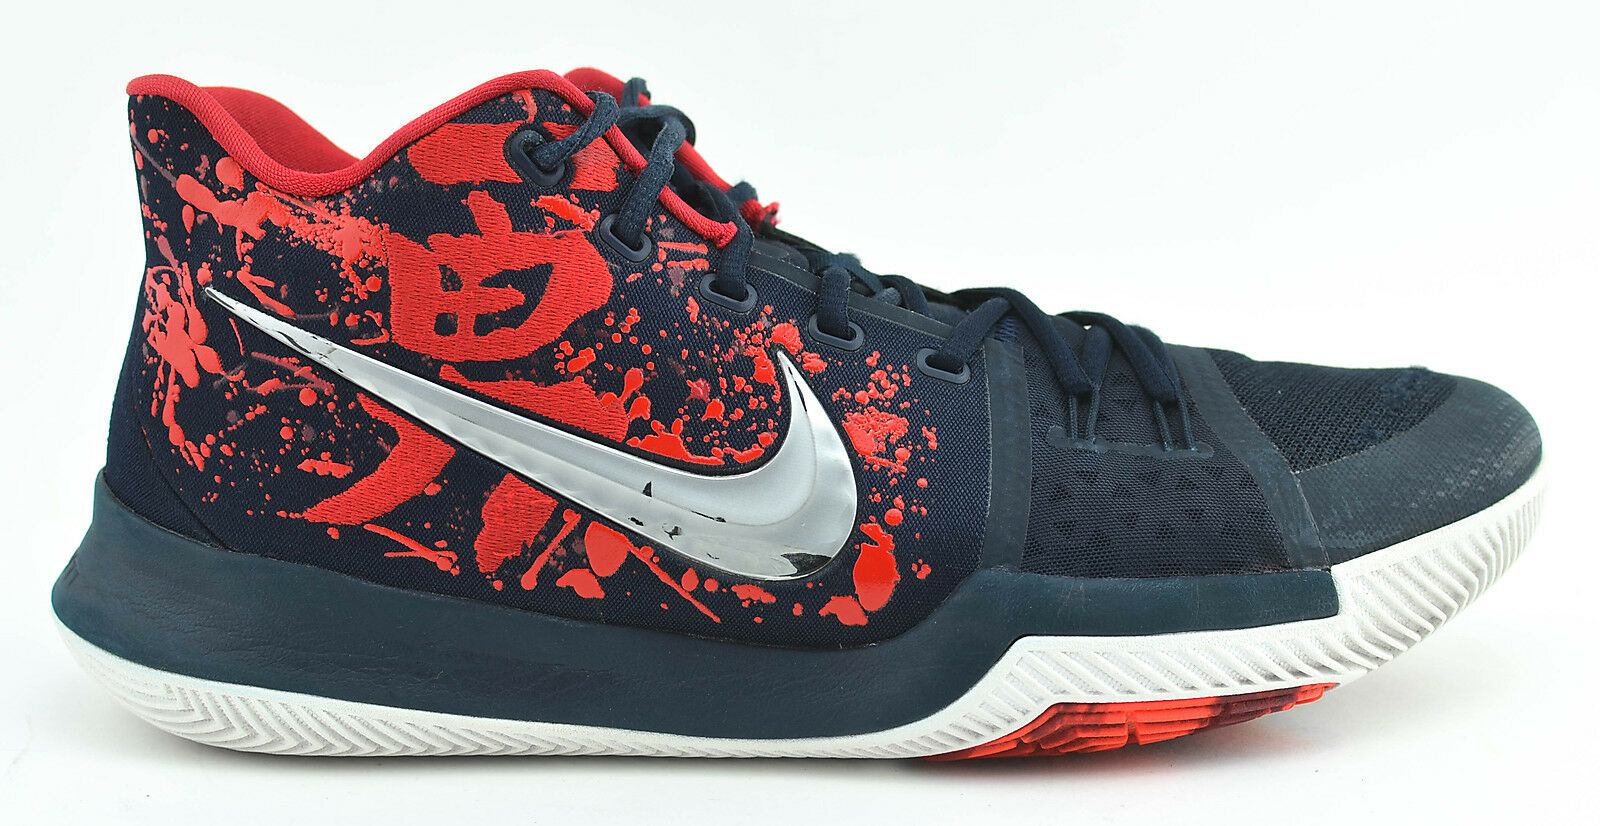 MENS NIKE KYRIE 3 Samurai Qs Christmas Basketball Shoes Size 12 Us ...